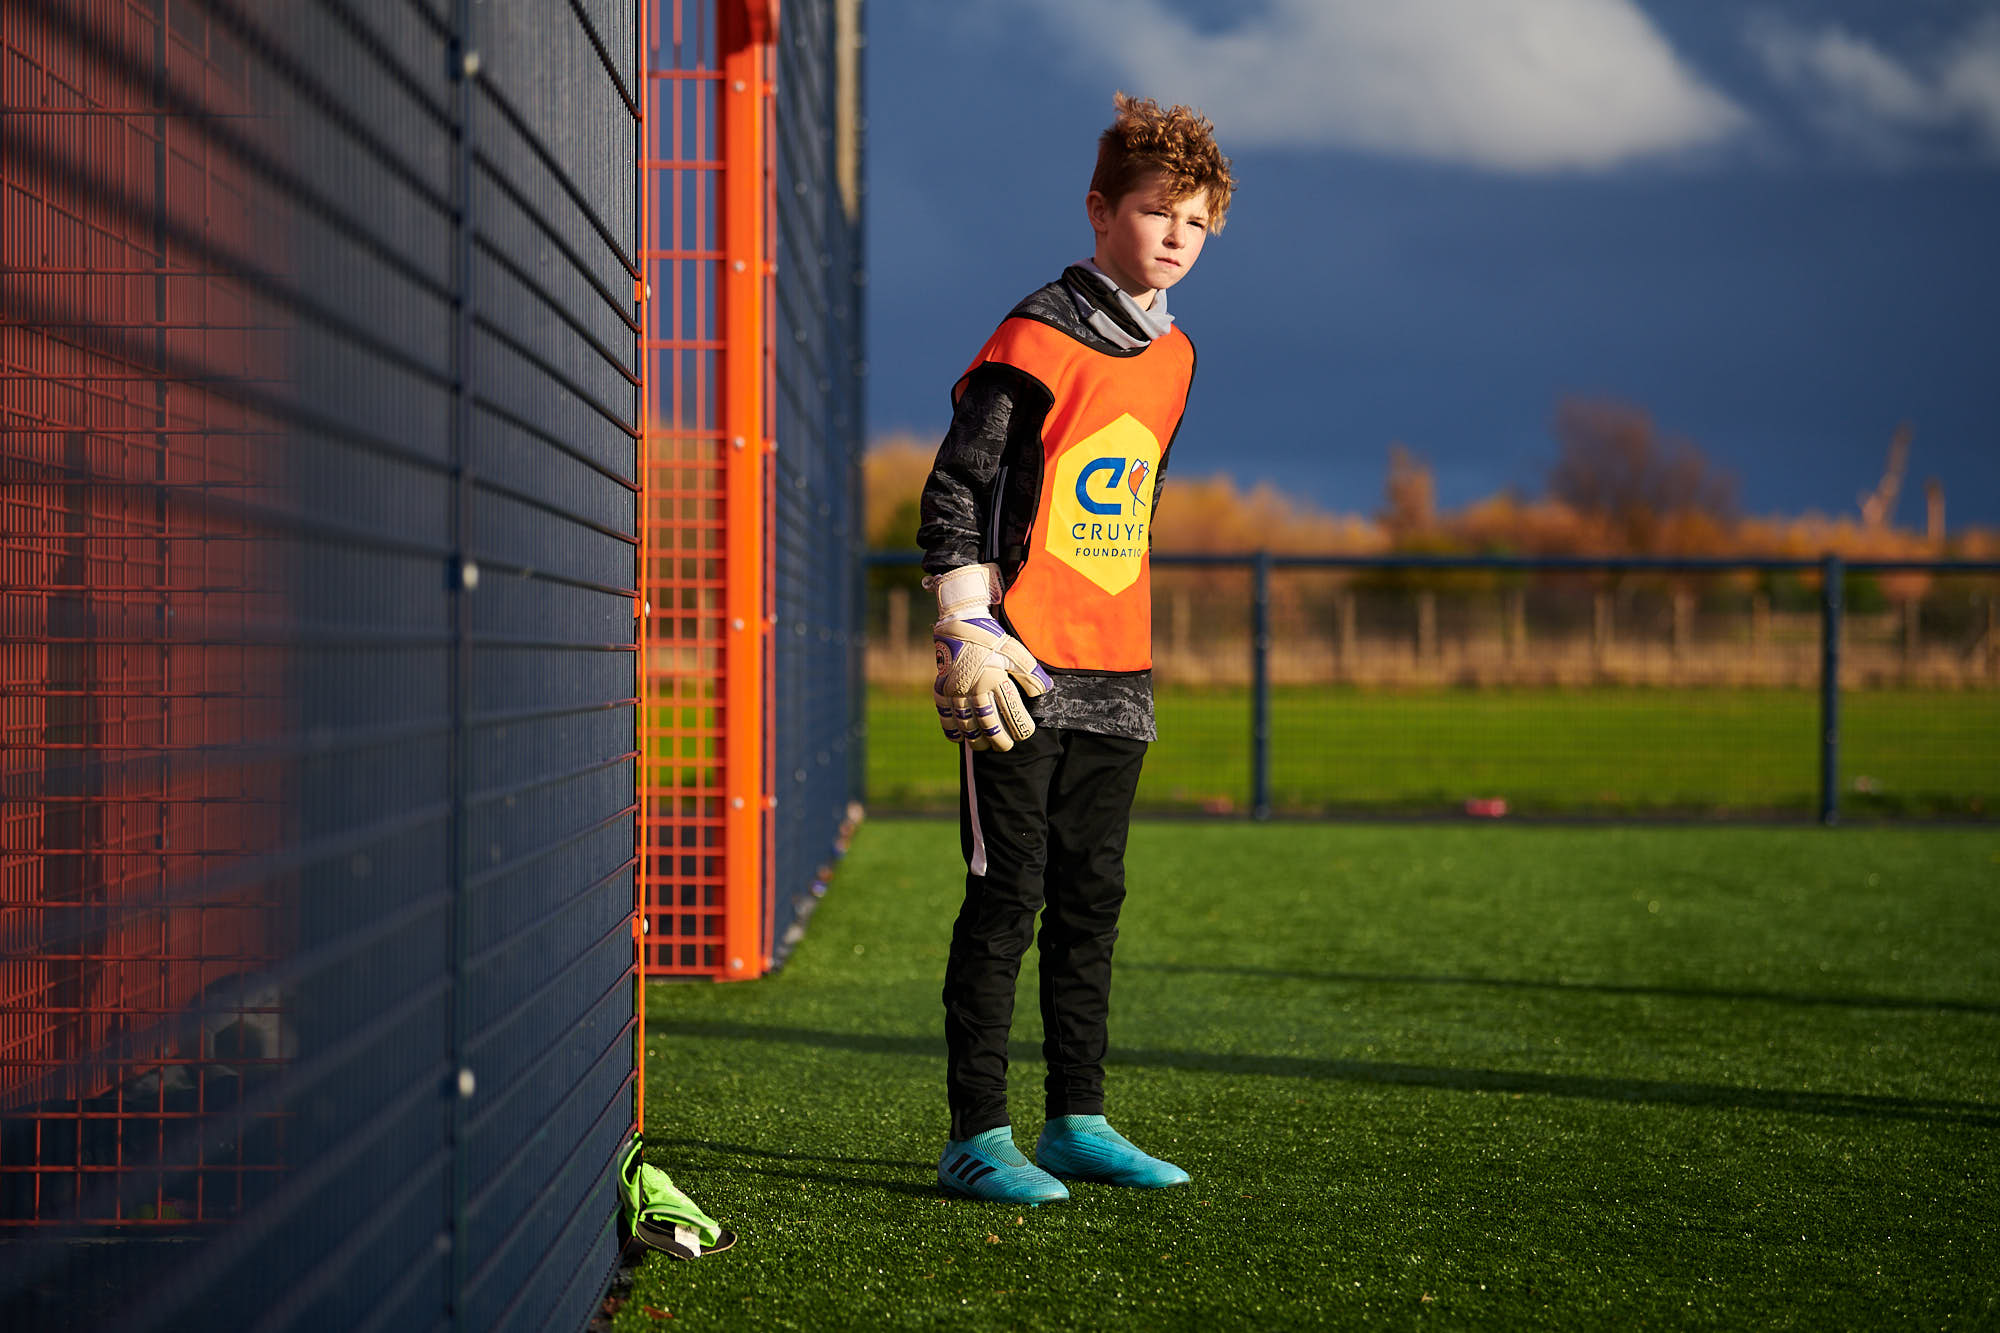 Goalkeeper on a Cruyff Court in Aberdeen